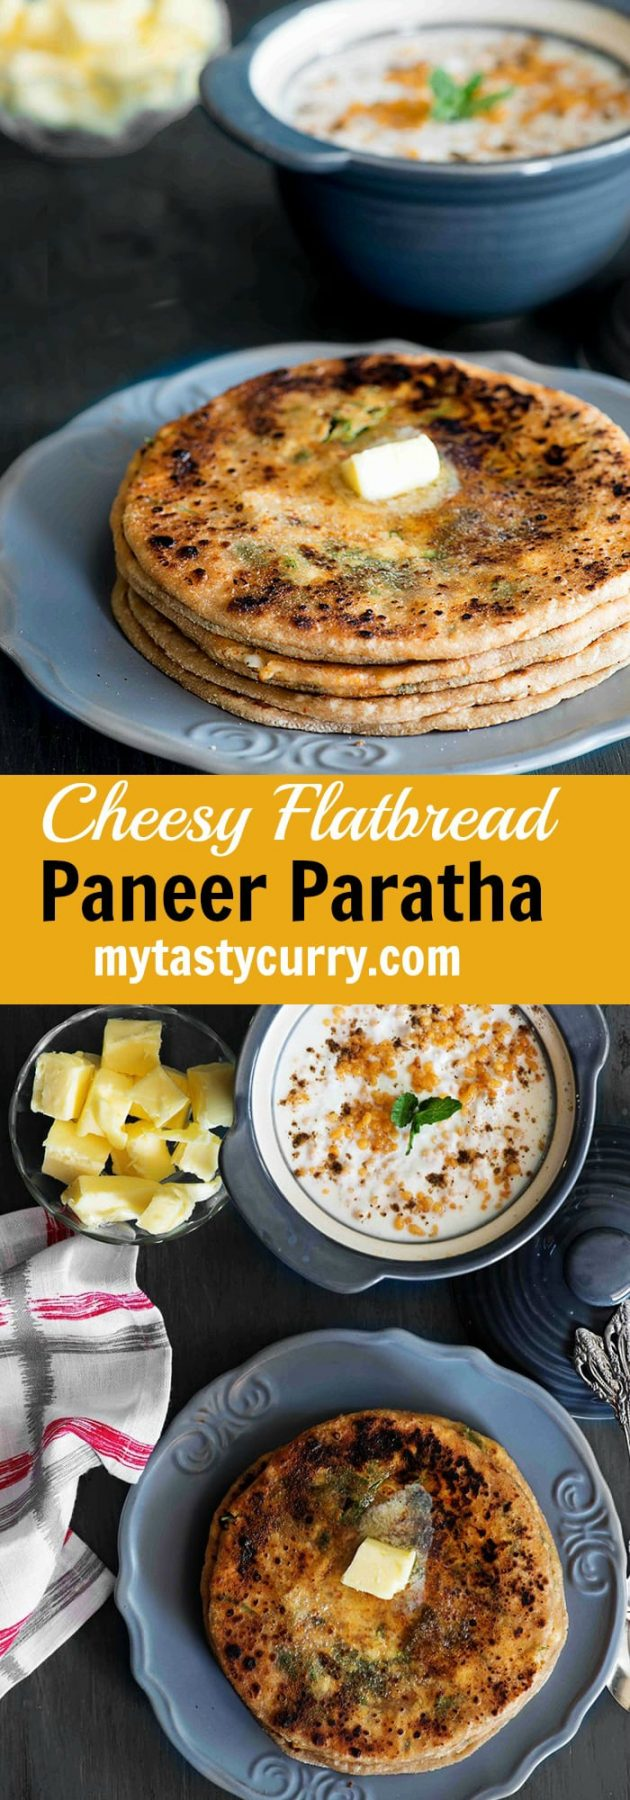 Paneer ka Paratha | Paneer stuffed Paratha Recipe | My Tasty Curry